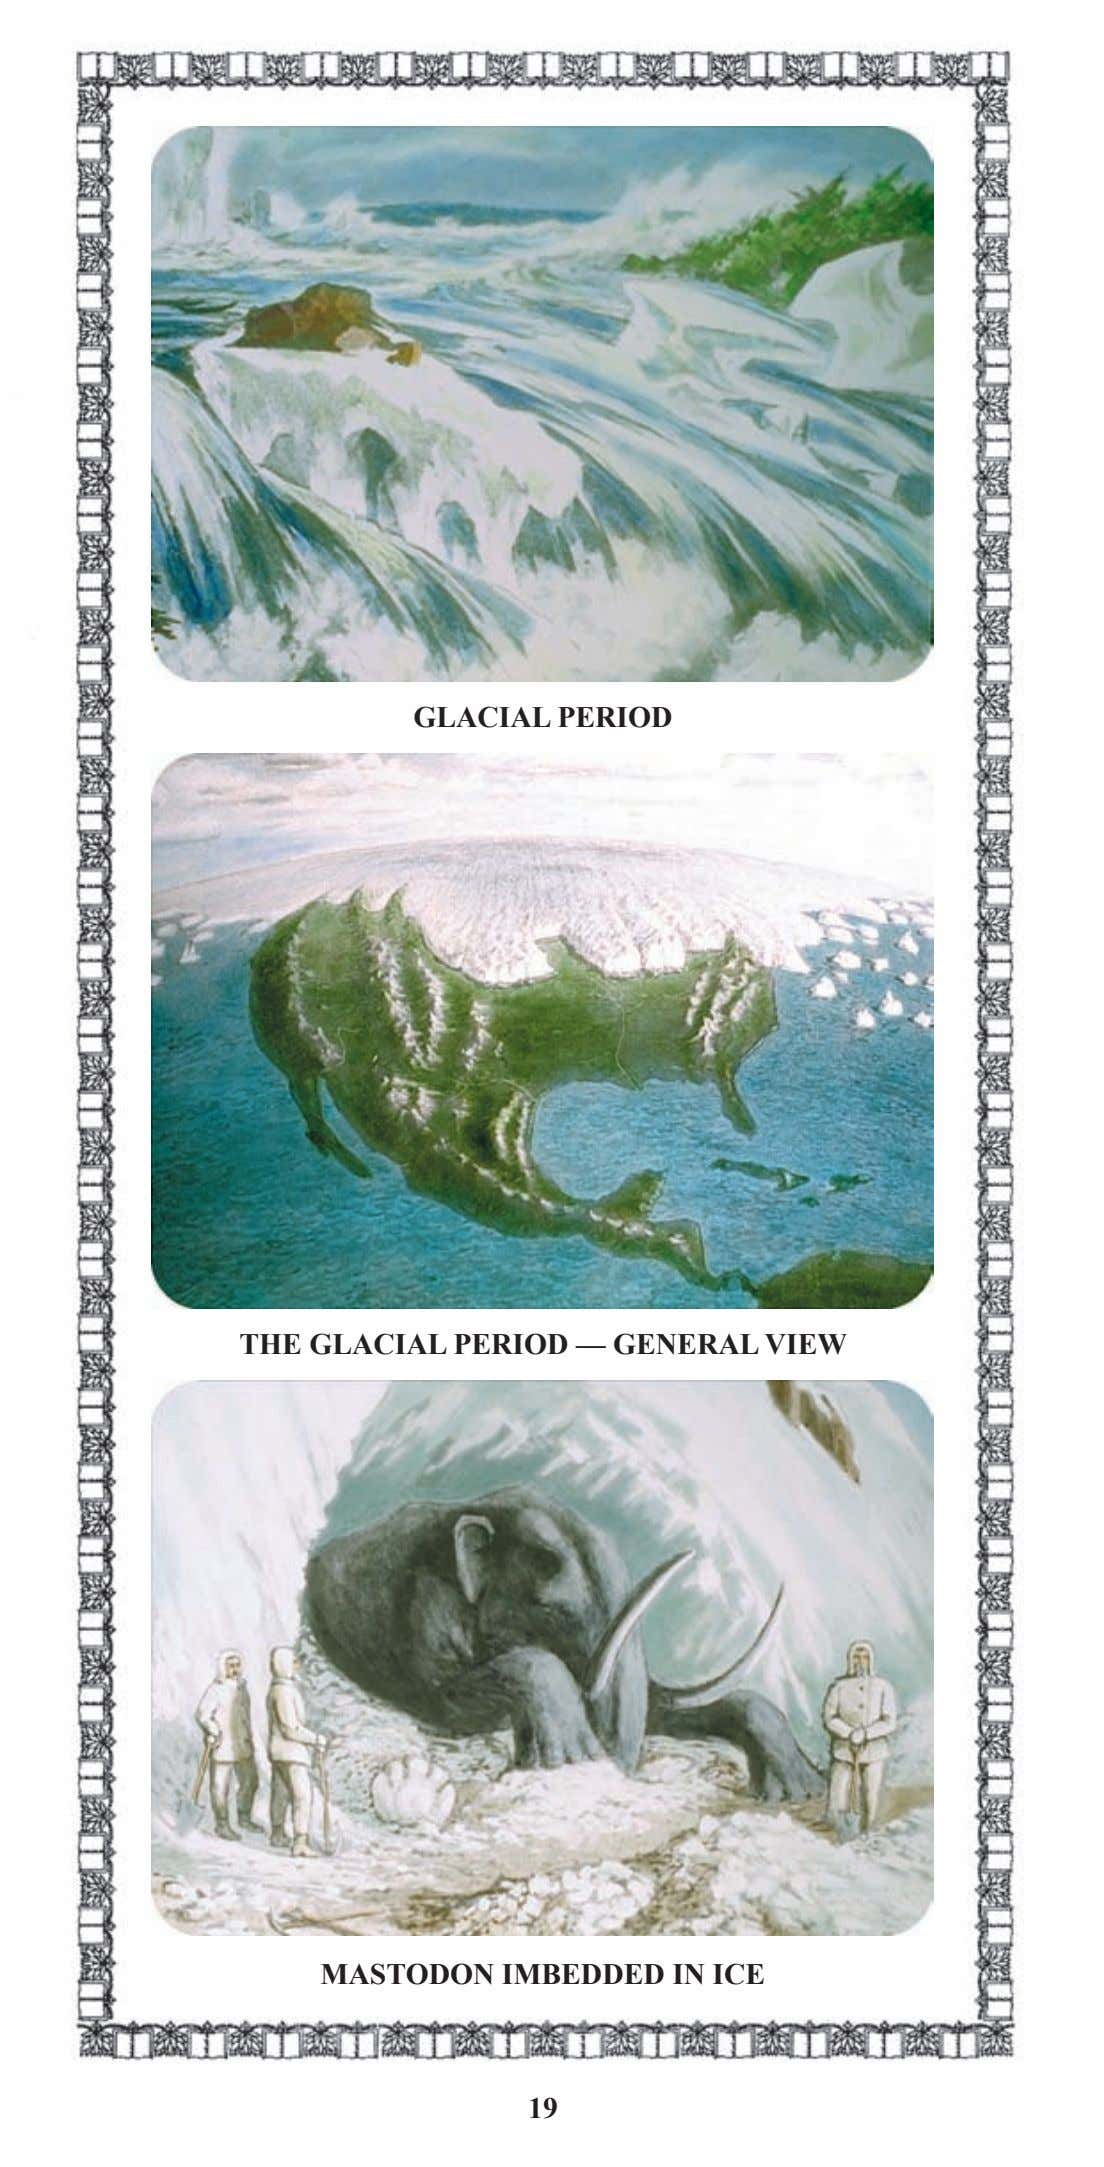 GLACIAL PERIOD THE GLACIAL PERIOD — GENERAL VIEW MASTODON IMBEDDED IN ICE 19